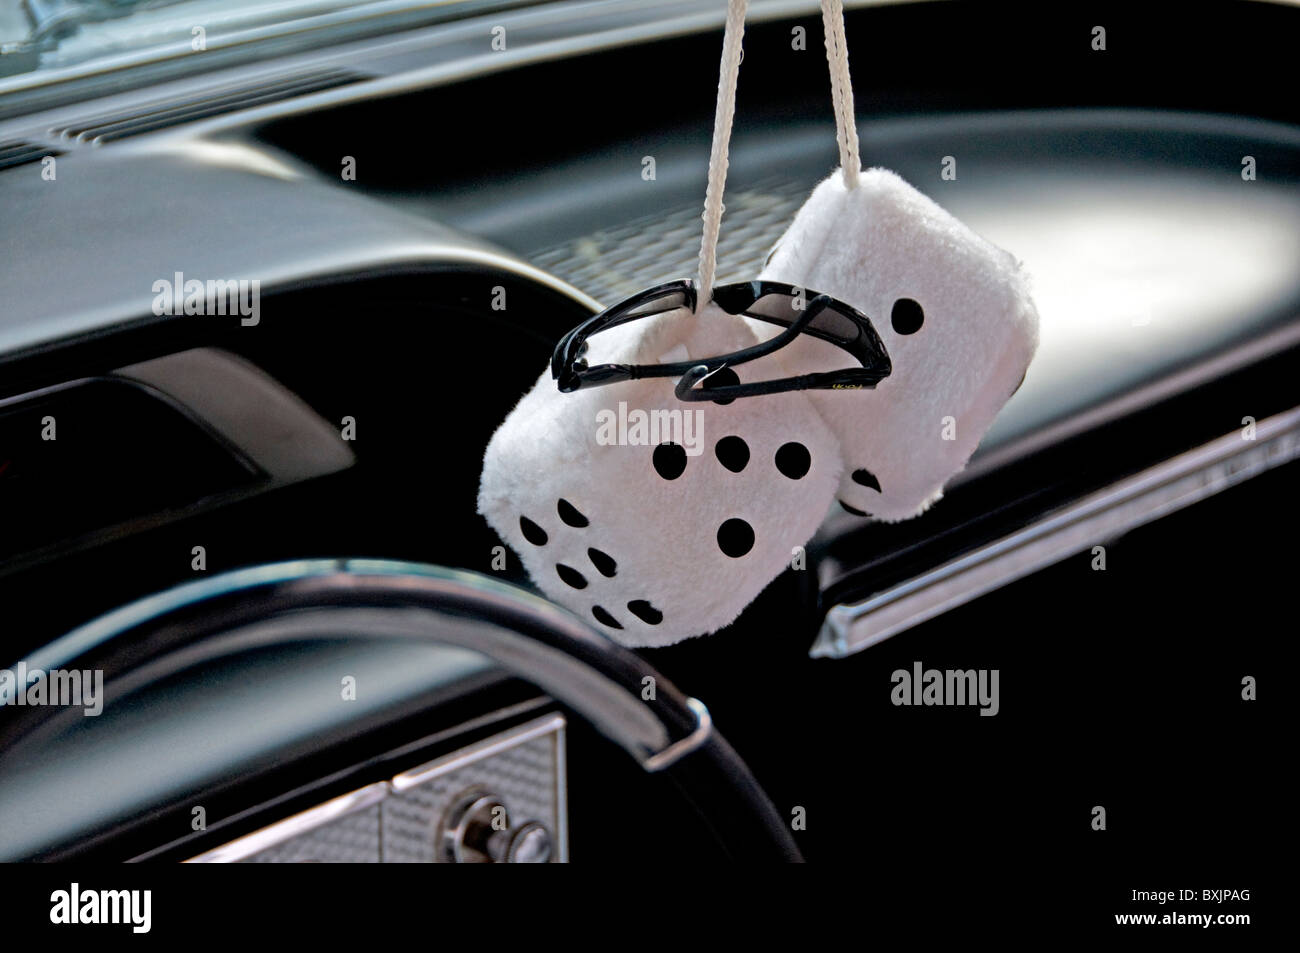 Fuzzy dice hanging on rear view mirror - Stock Image